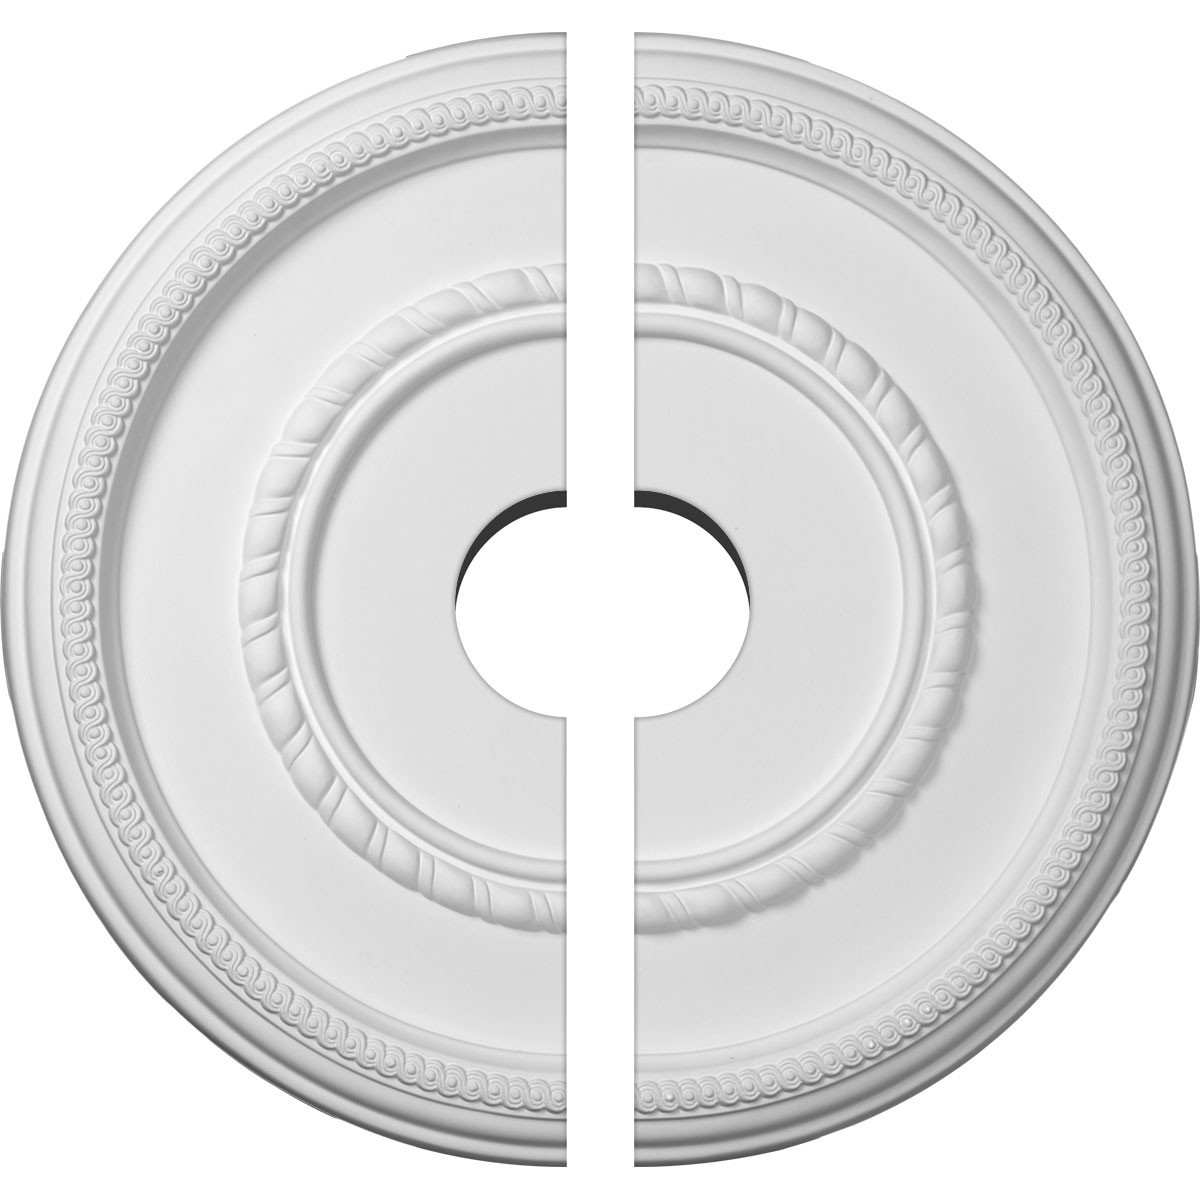 "EM-CM17FE2-03500 - 17 3/8""OD x 3 1/2""ID x 1 1/8""P Federal Roped Large Ceiling Medallion, Two Piece (Fits Canopies up to 7 3/4"")"